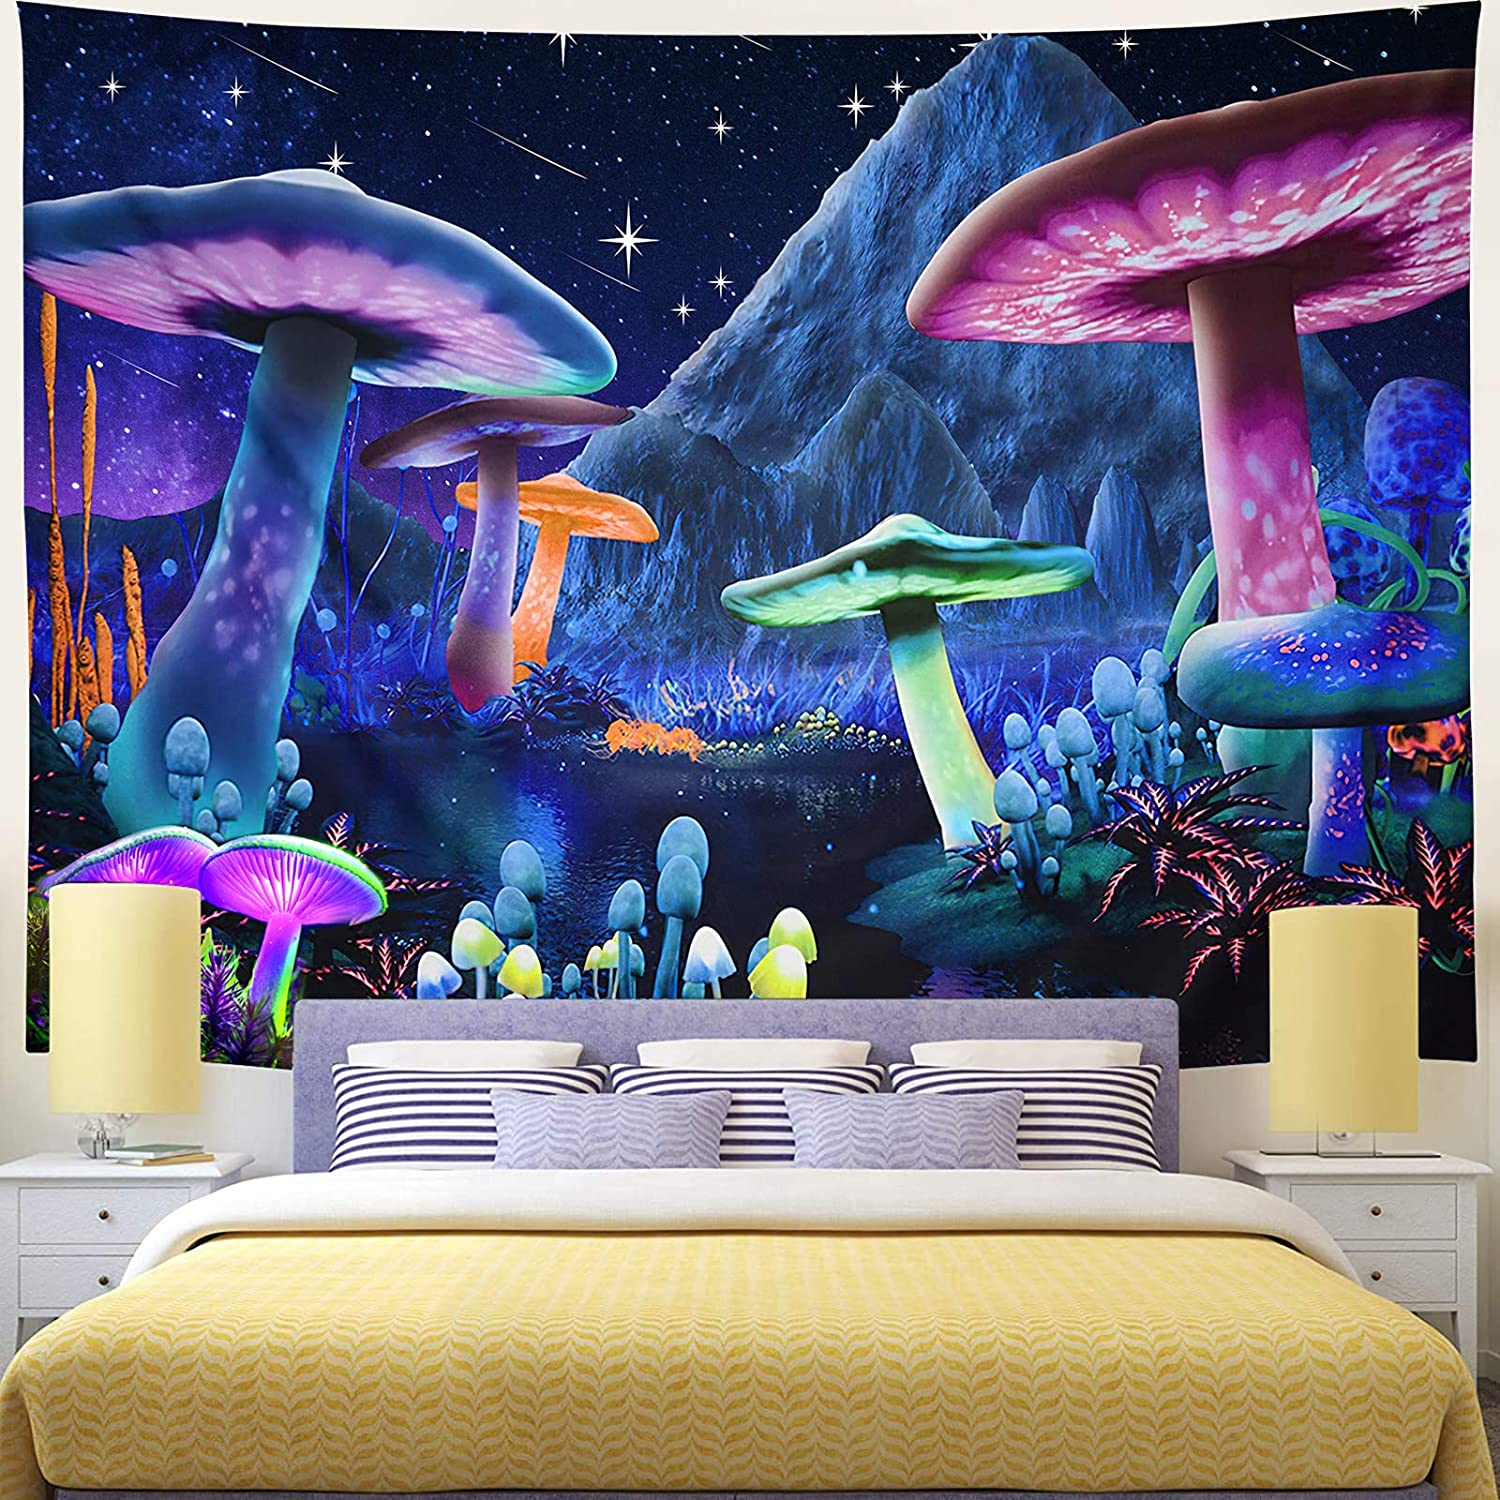 Wekoxo Psychedelic Mushroom Manufacturer direct delivery Tapestry Sky Trippy Starry OFFer